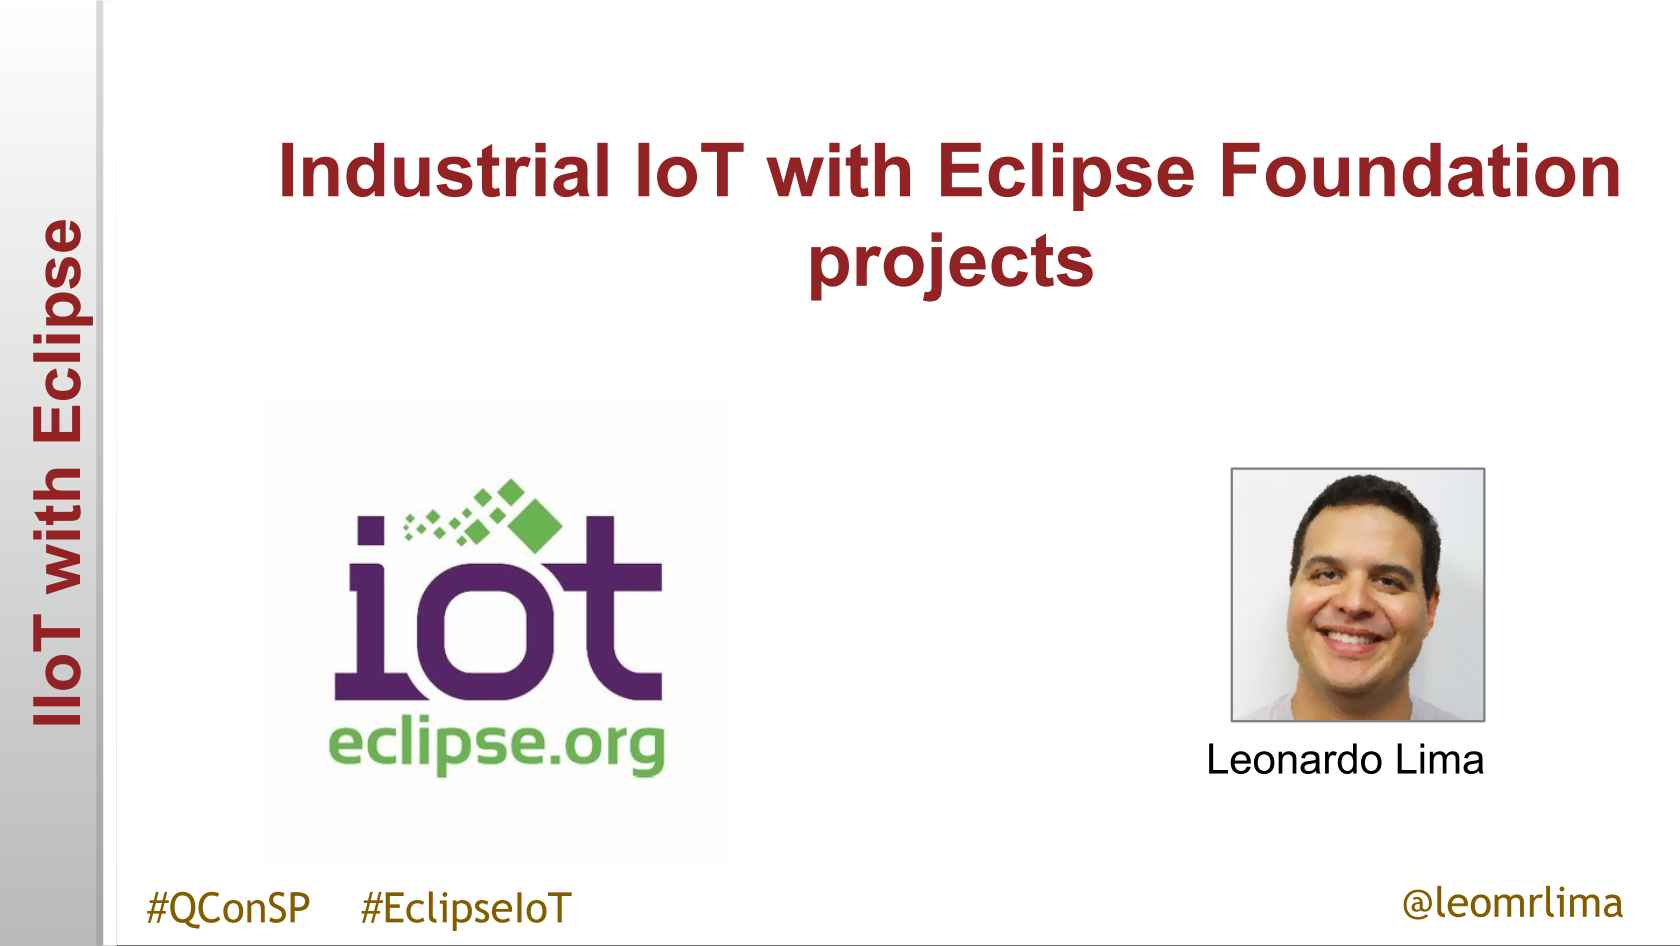 Industrial IoT with Eclipse Foundation projects